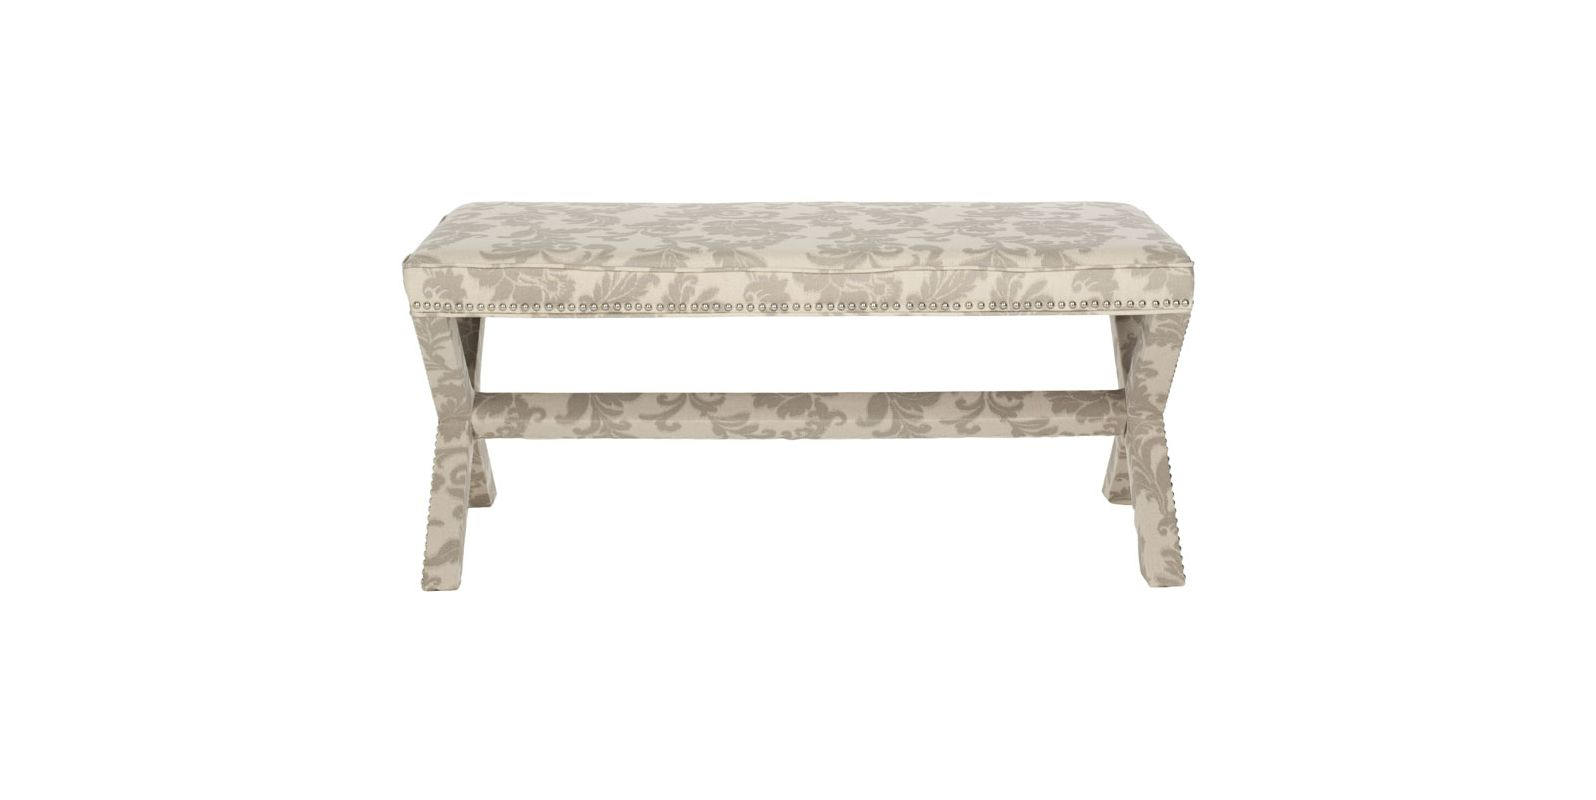 Safavieh MCR4617 Melanie Extended Bench Taupe and Beige Print